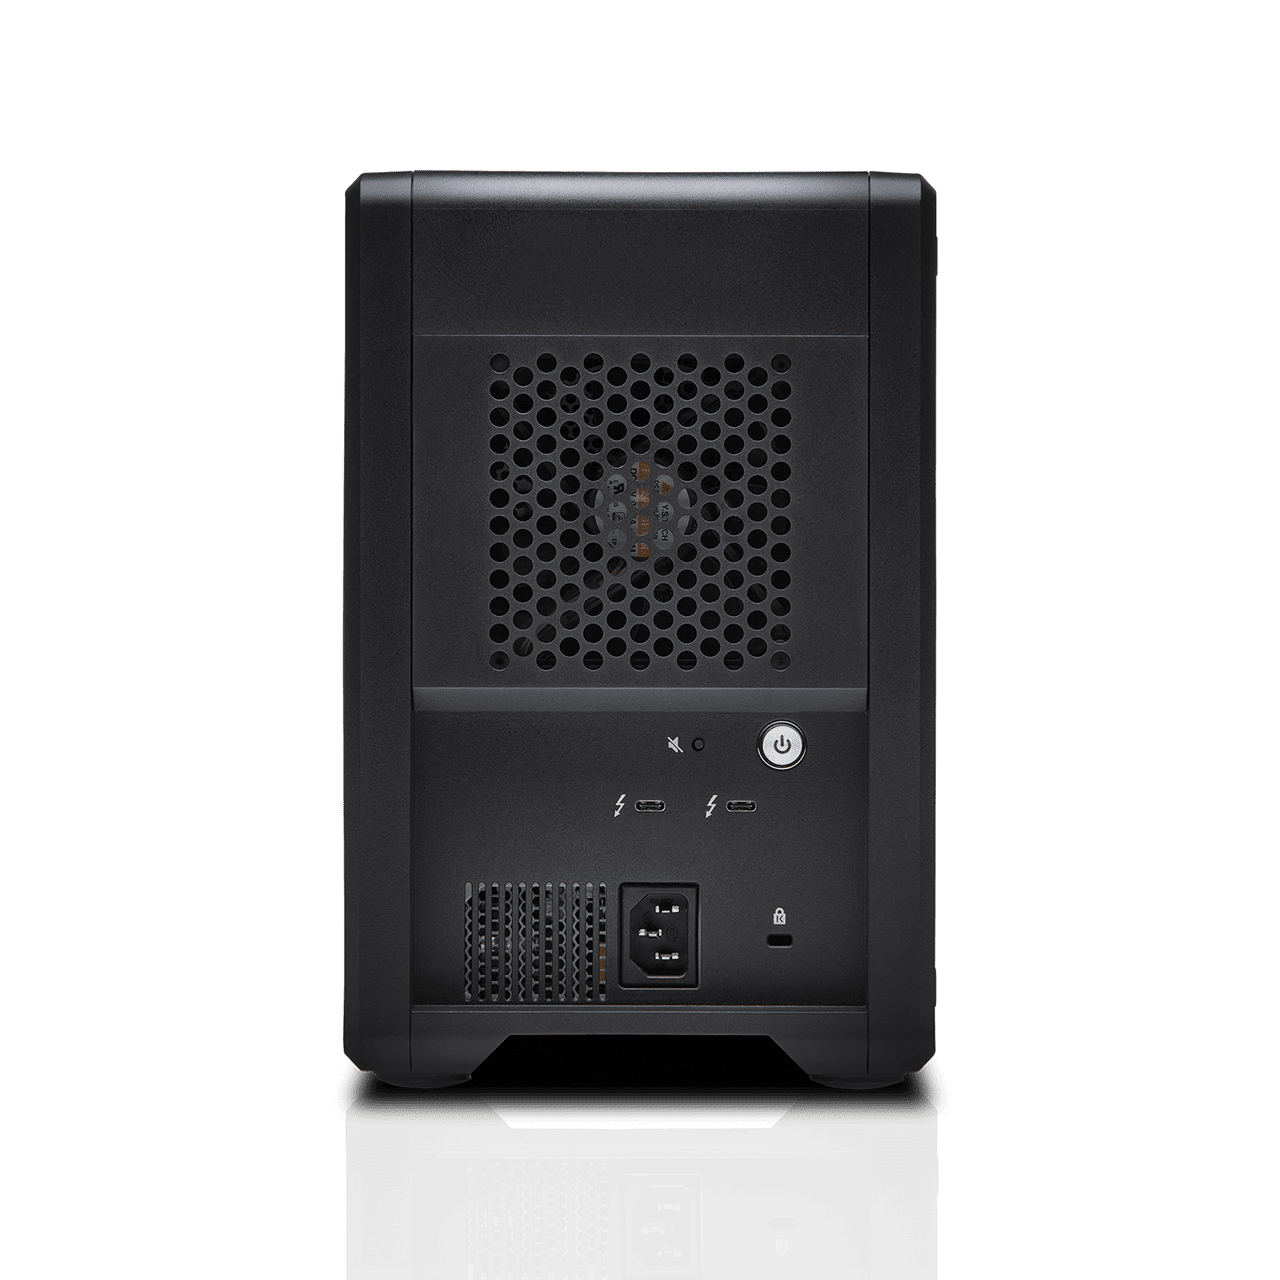 g-speed-shuttle-with-thunderbolt-3-back-png-thumb-1280-1280